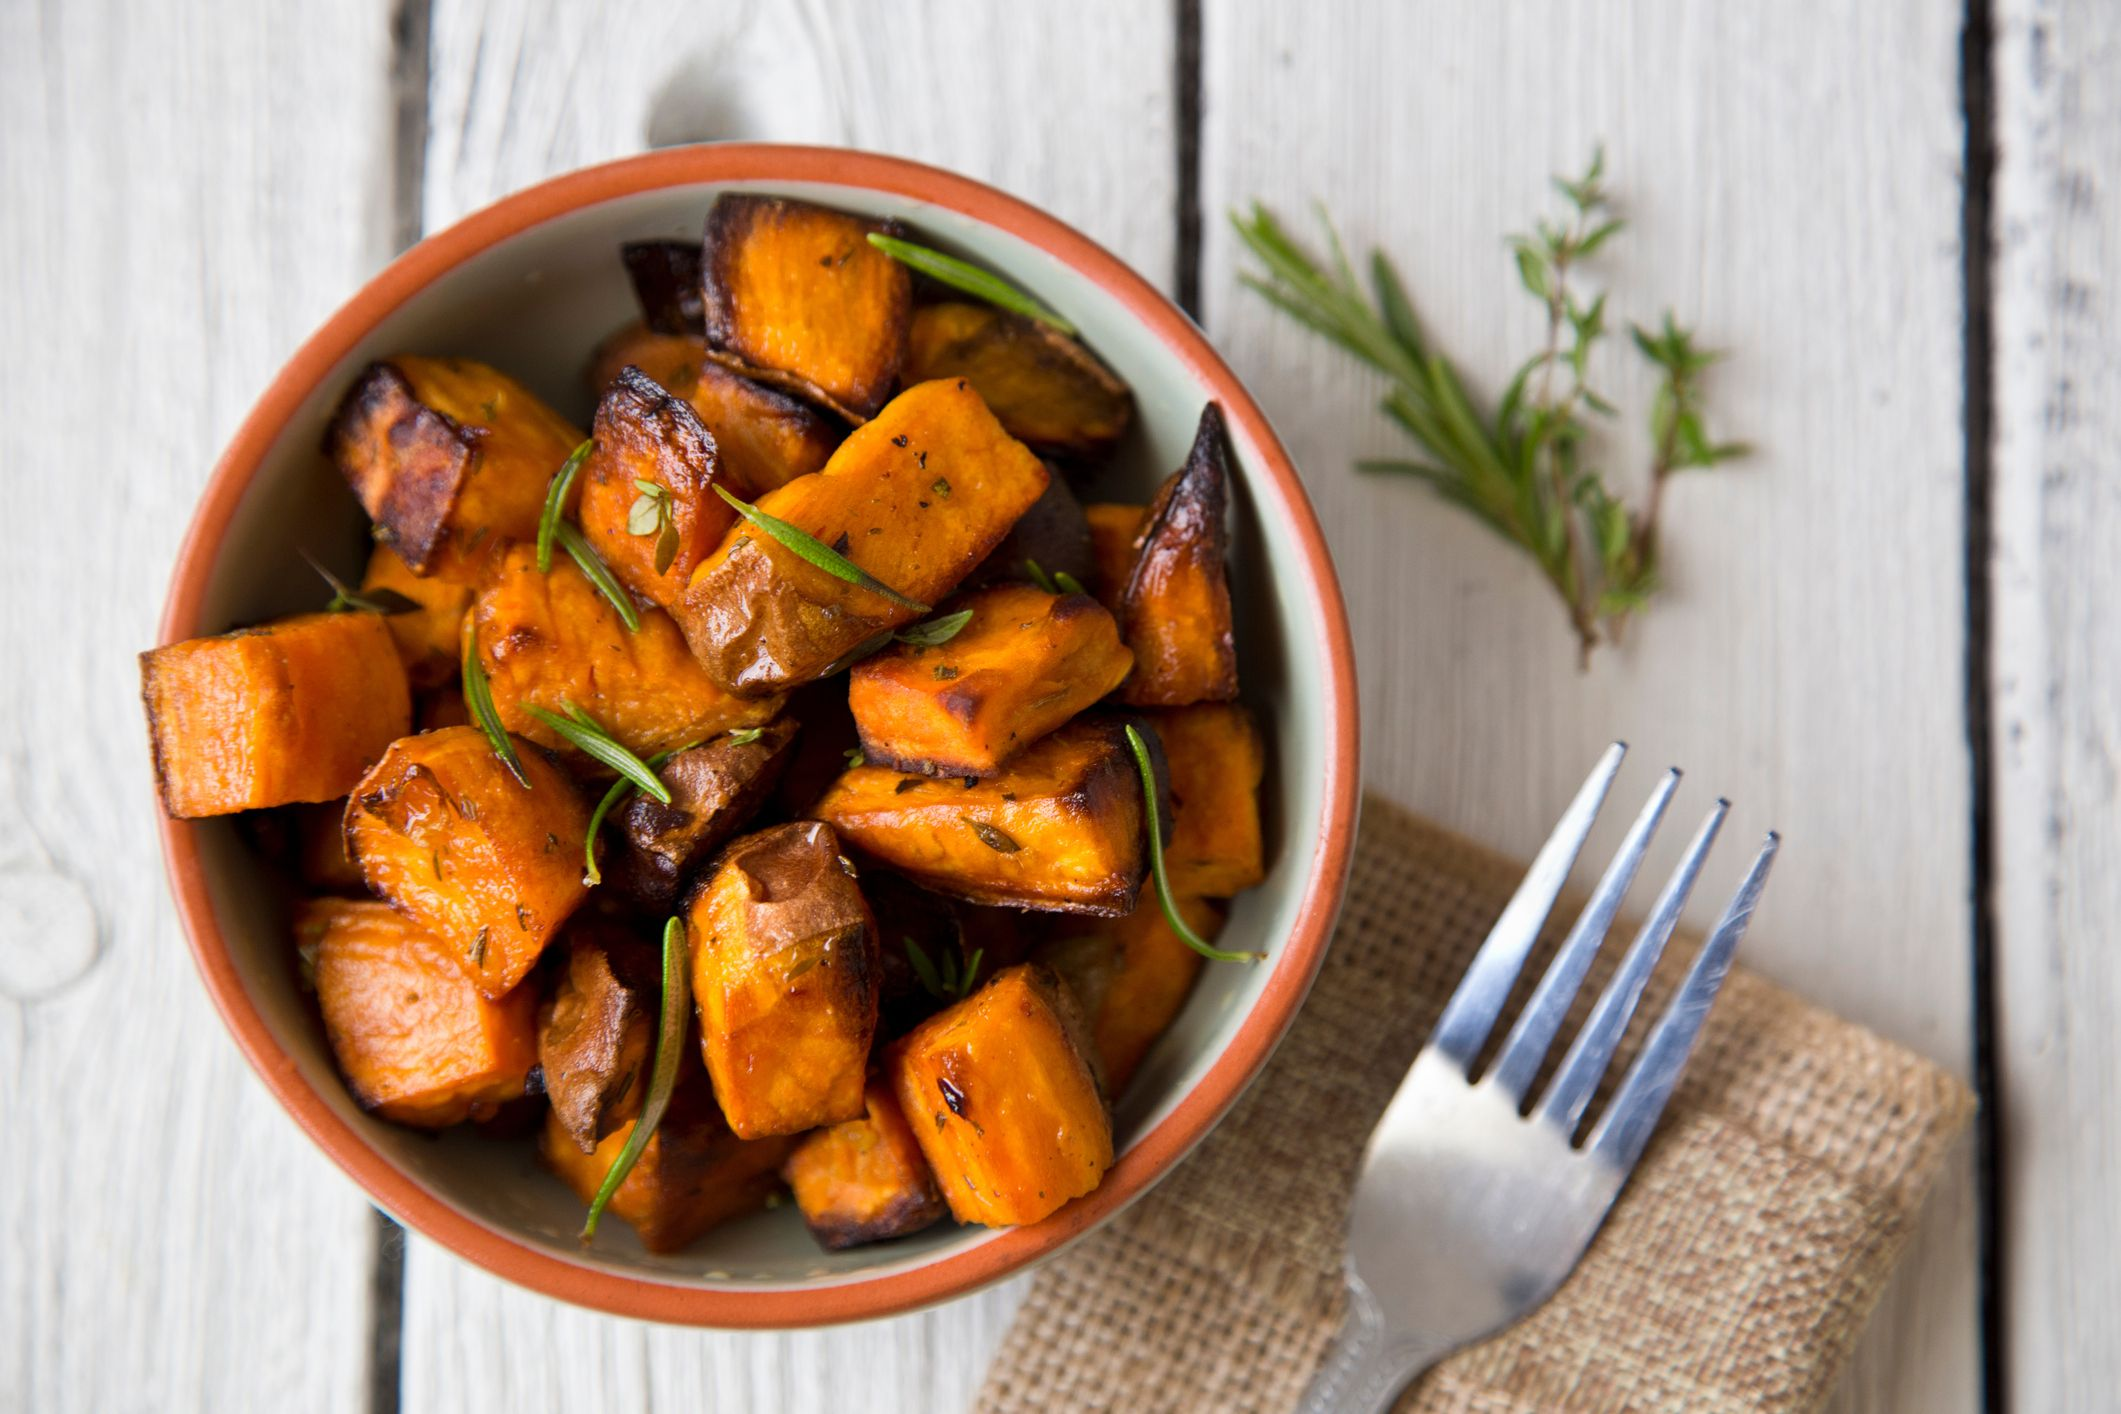 Watch Sweet Potatoes: Nutritional Profile 12 Impressive Benefits video